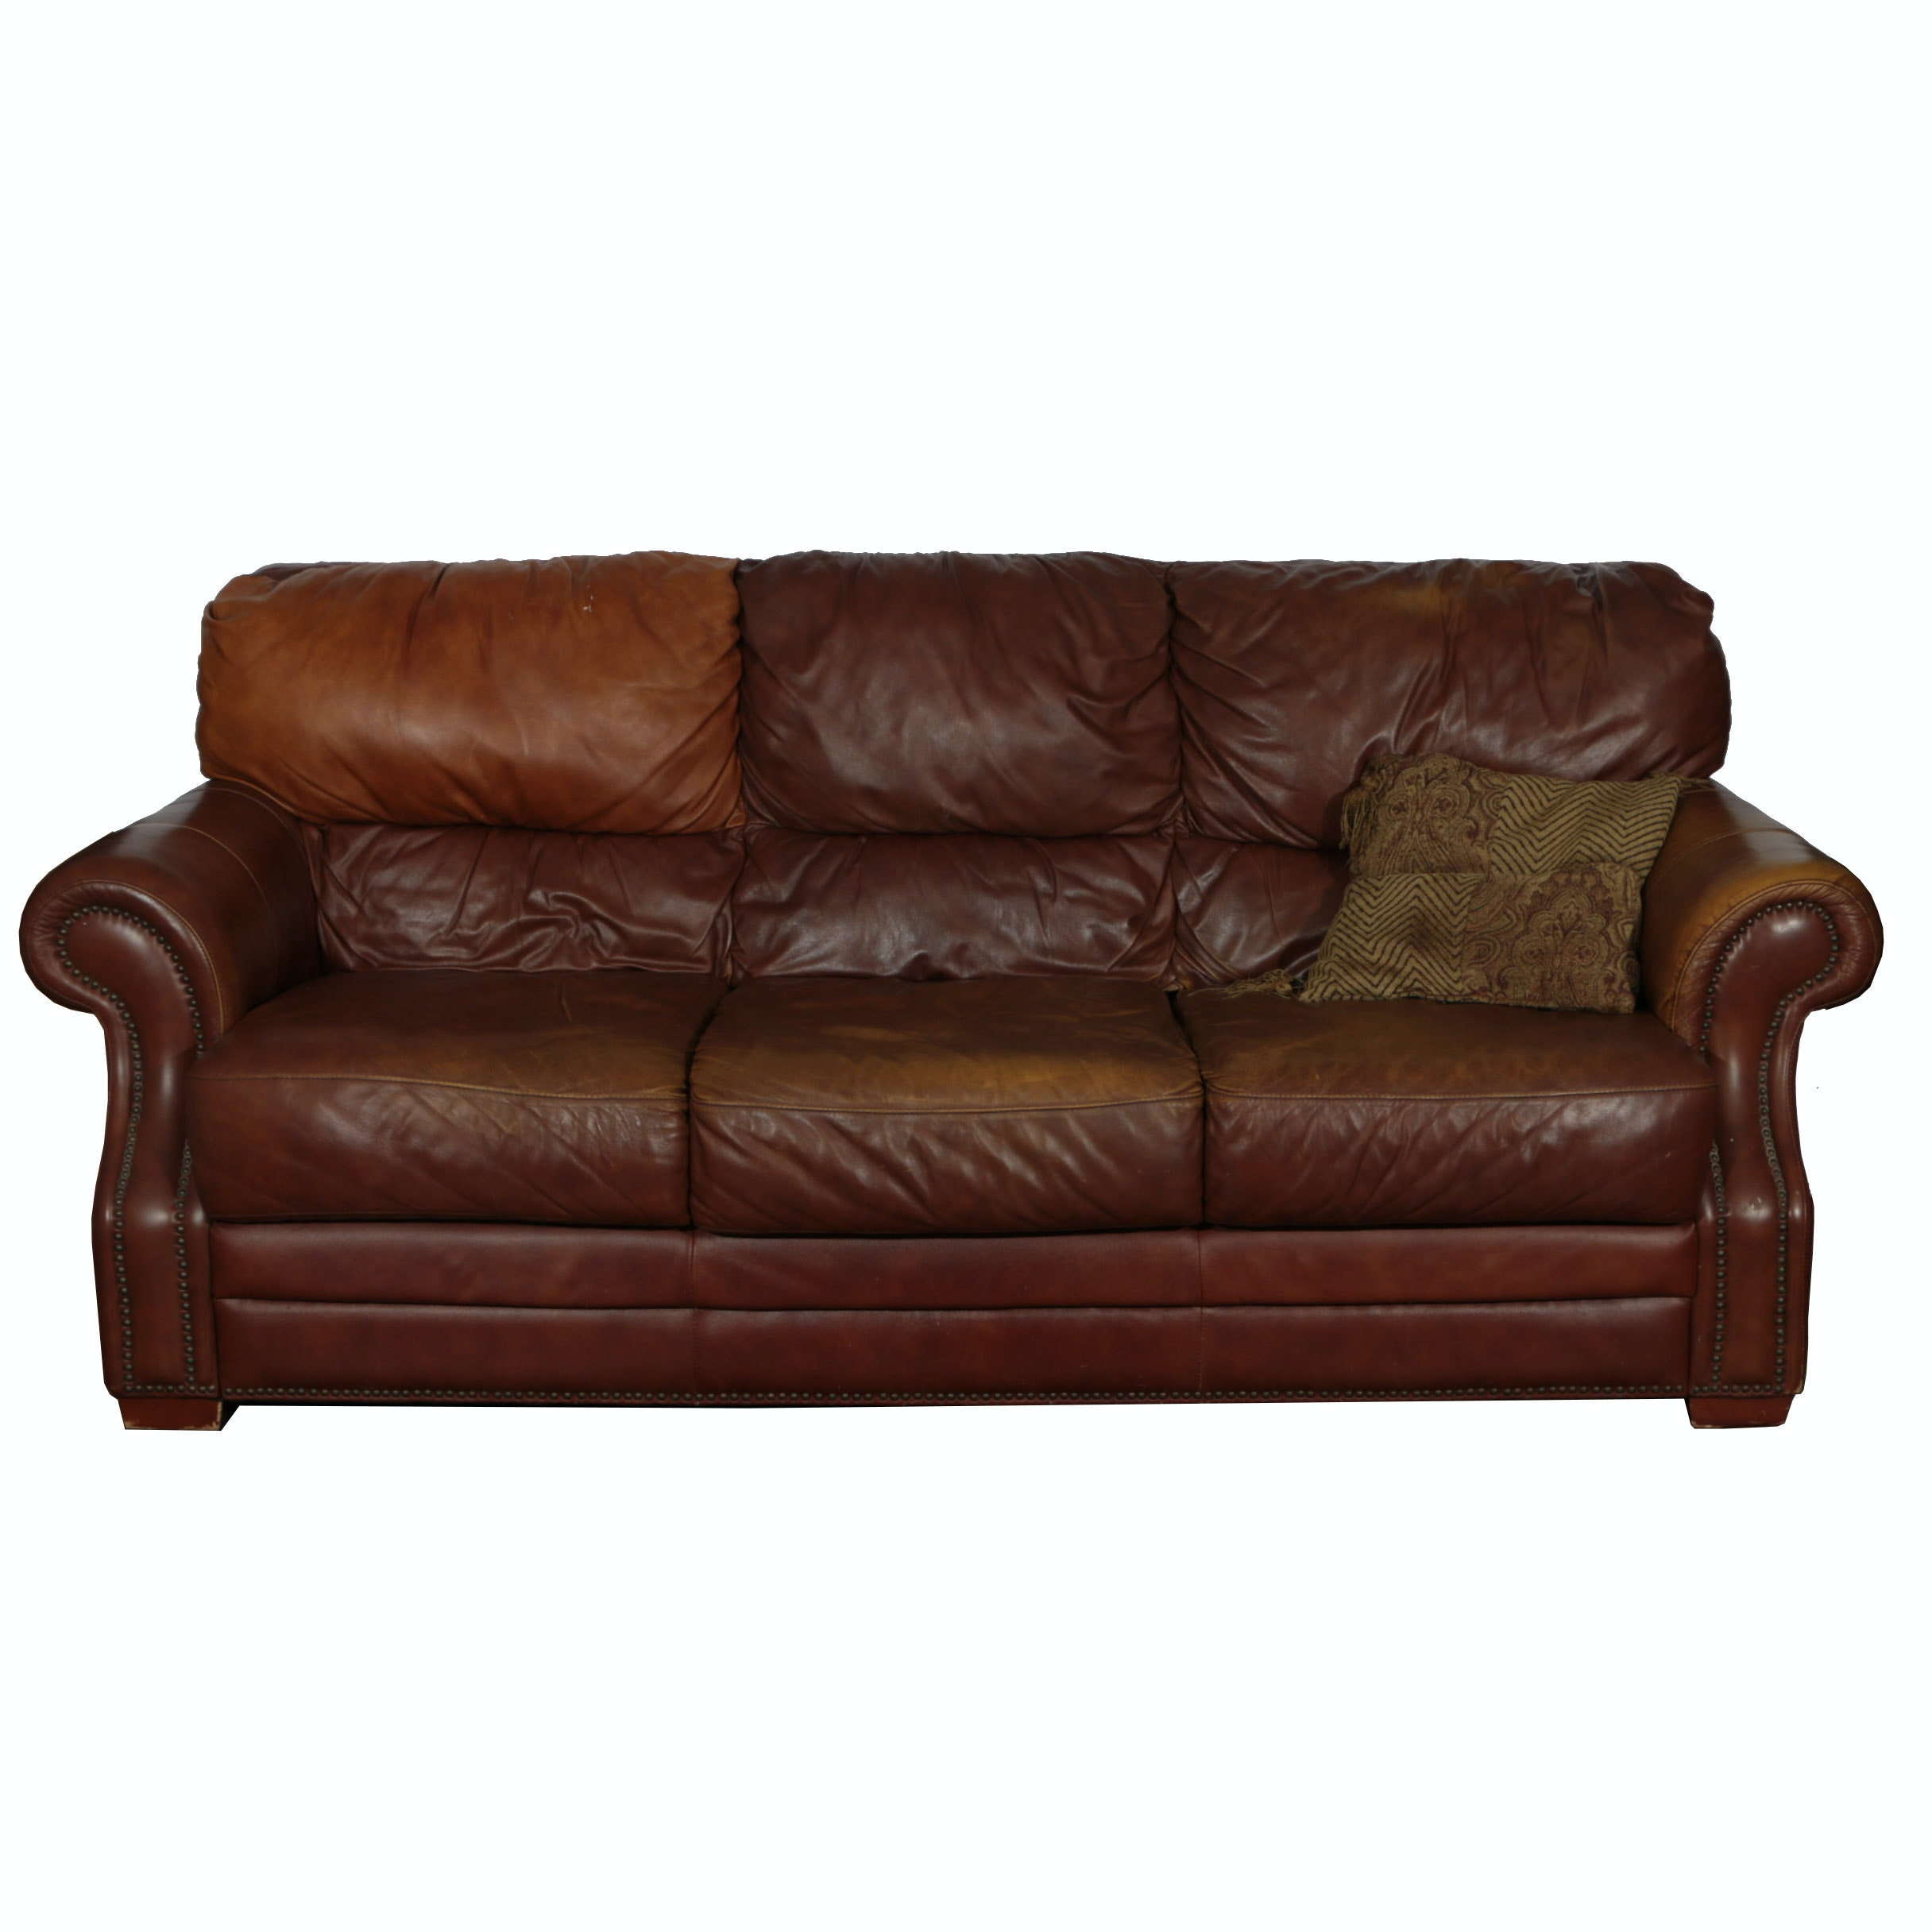 Two Tone Brown Leather Couch By Leathermart Ebth